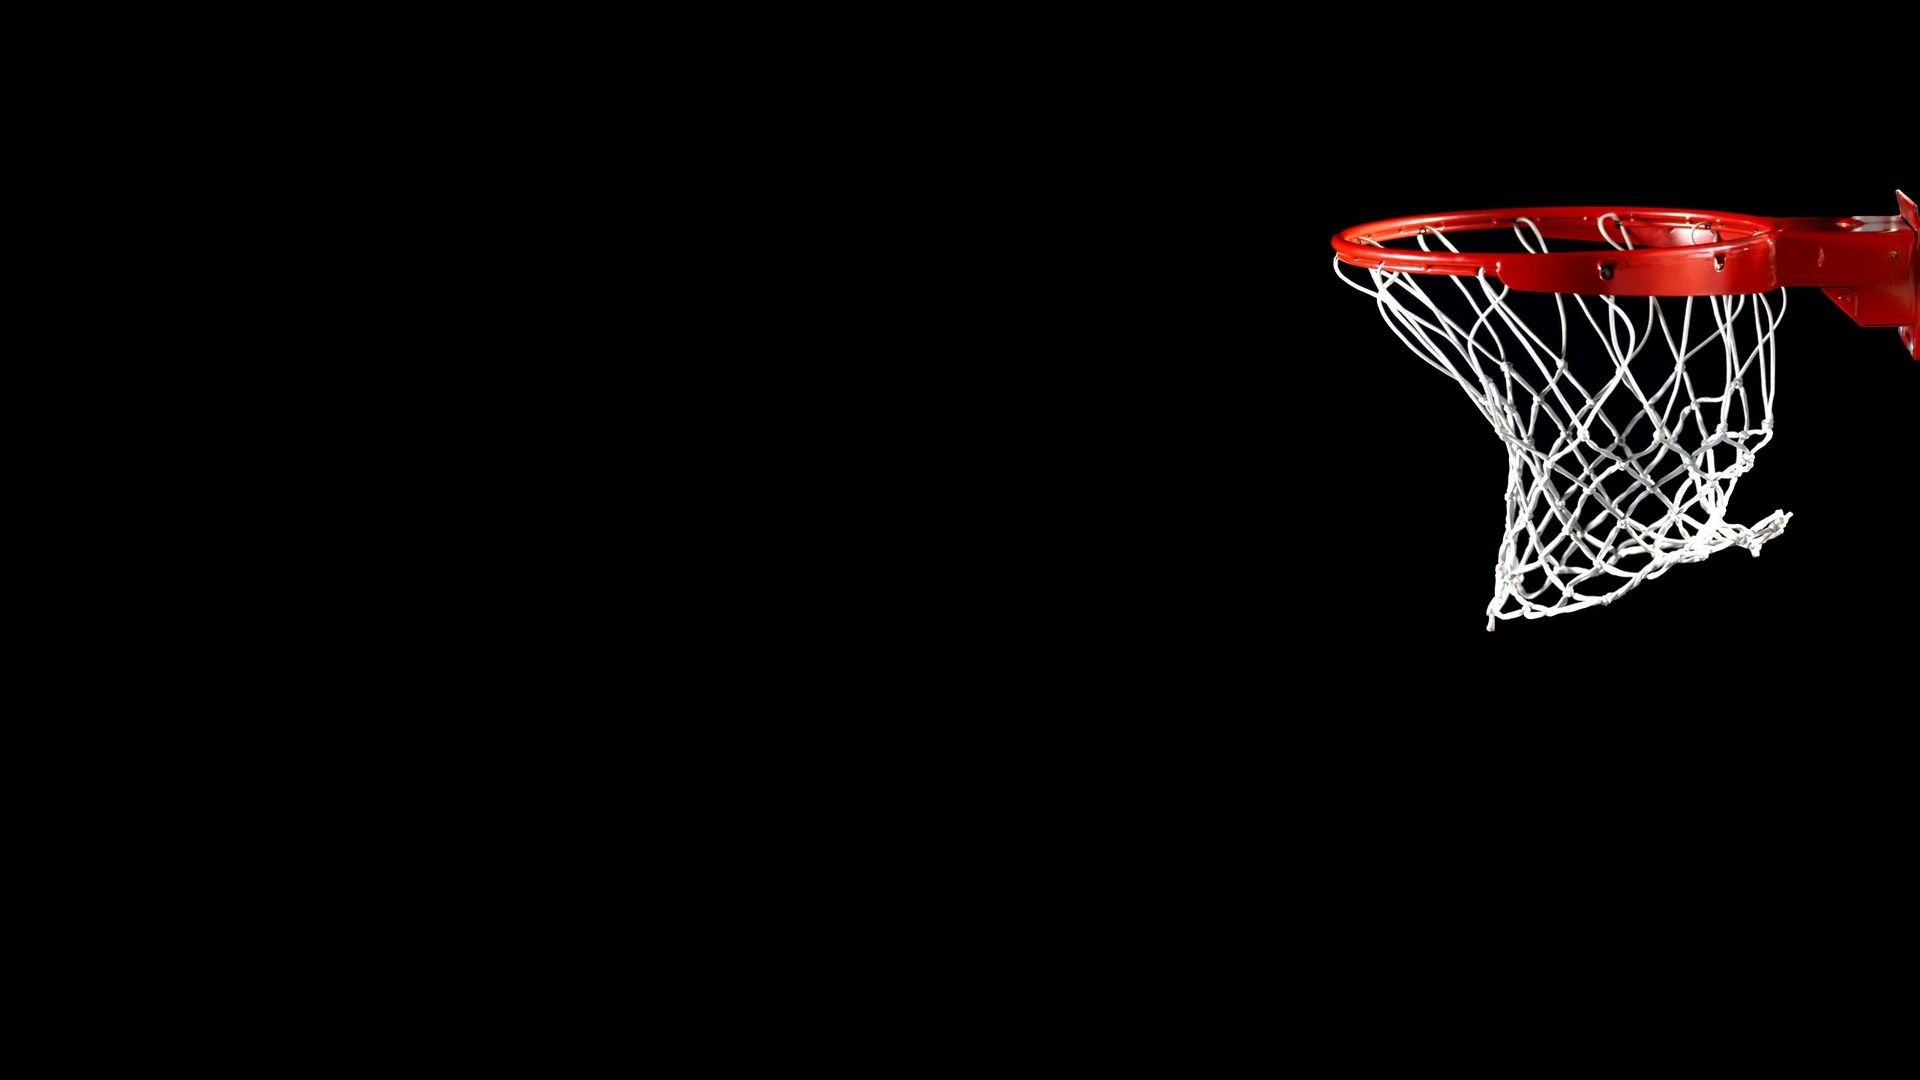 Sports Laptop Wallpapers Top Free Sports Laptop Backgrounds Wallpaperaccess